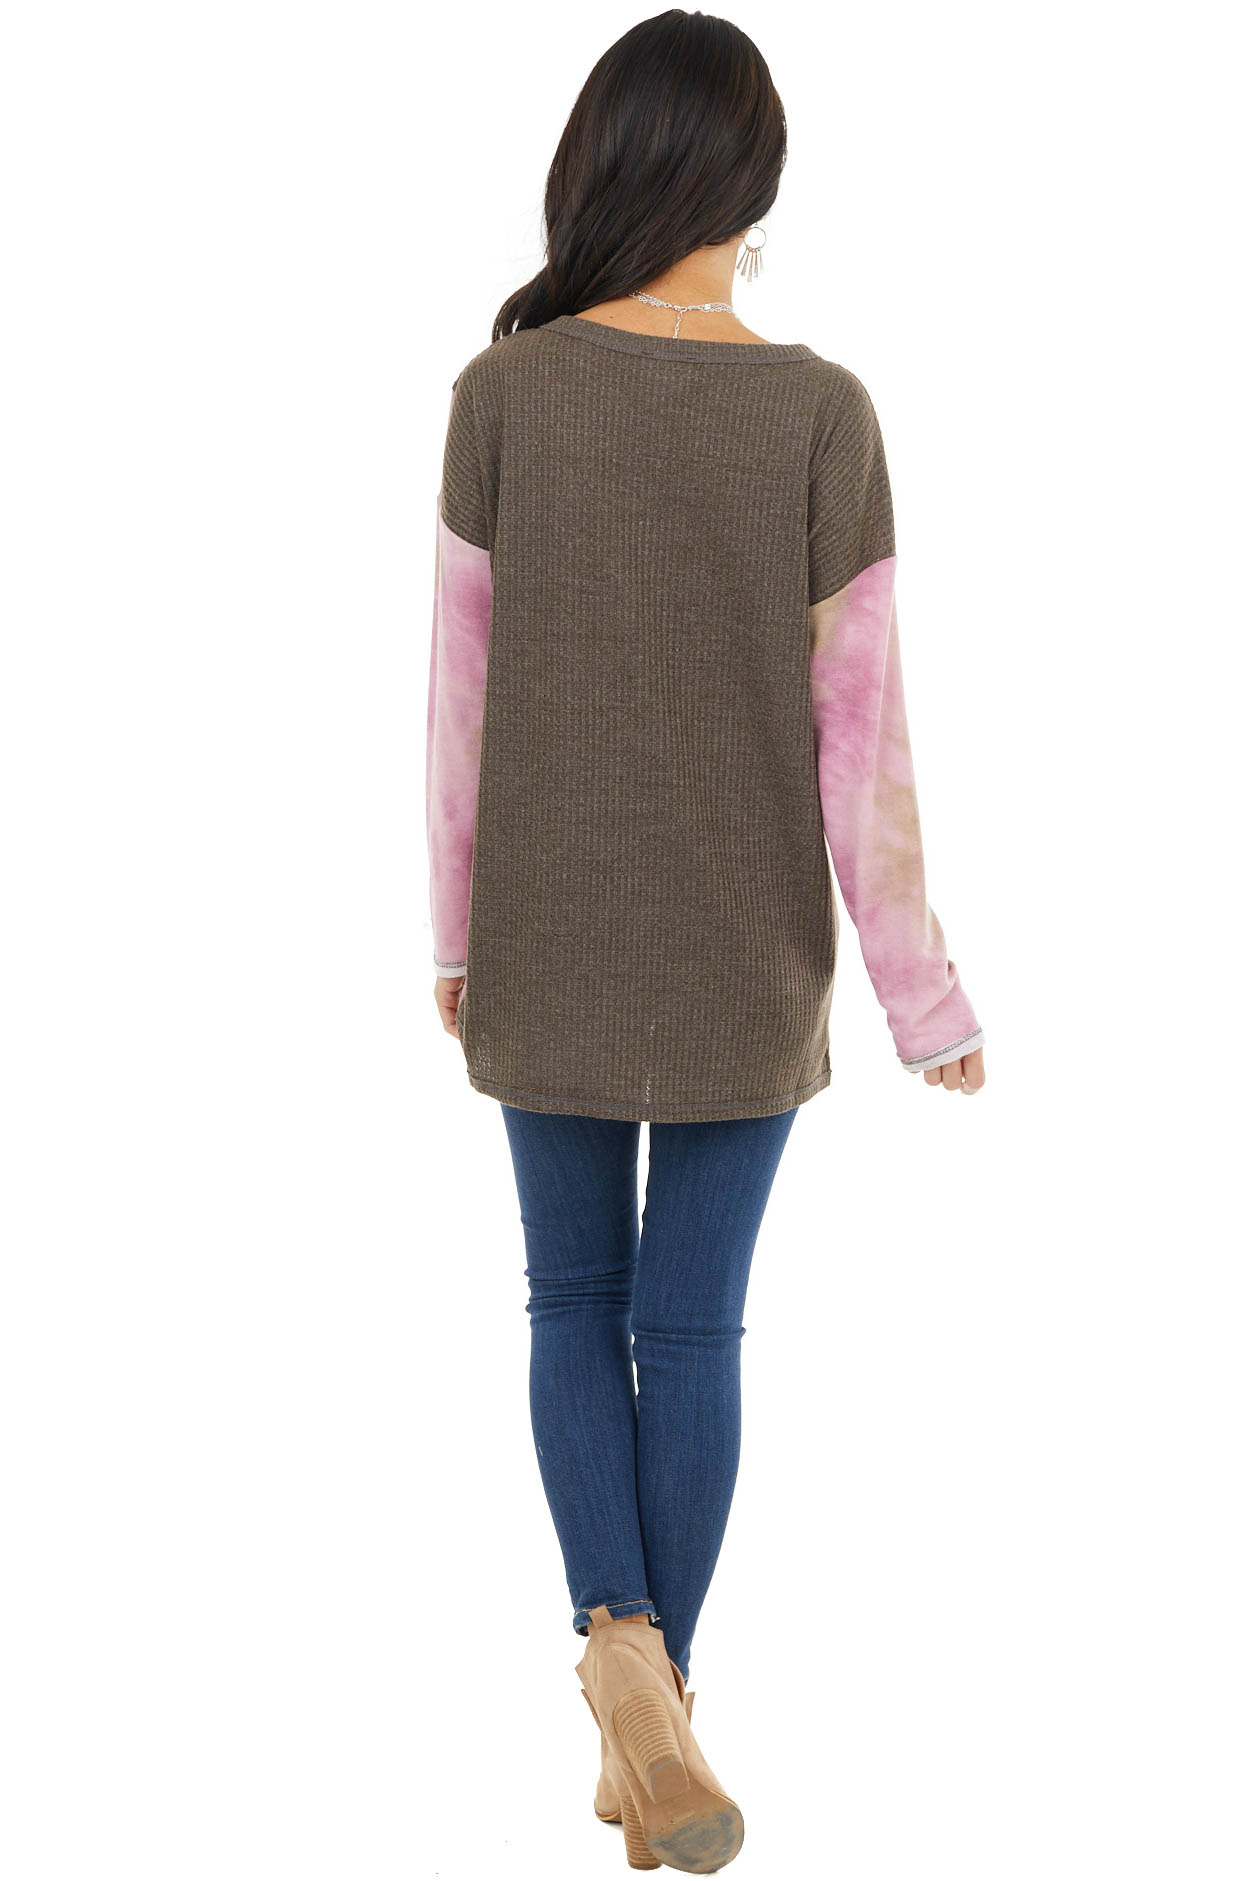 Taupe and Blush Colorblock Long Sleeve Top with Tie Dye